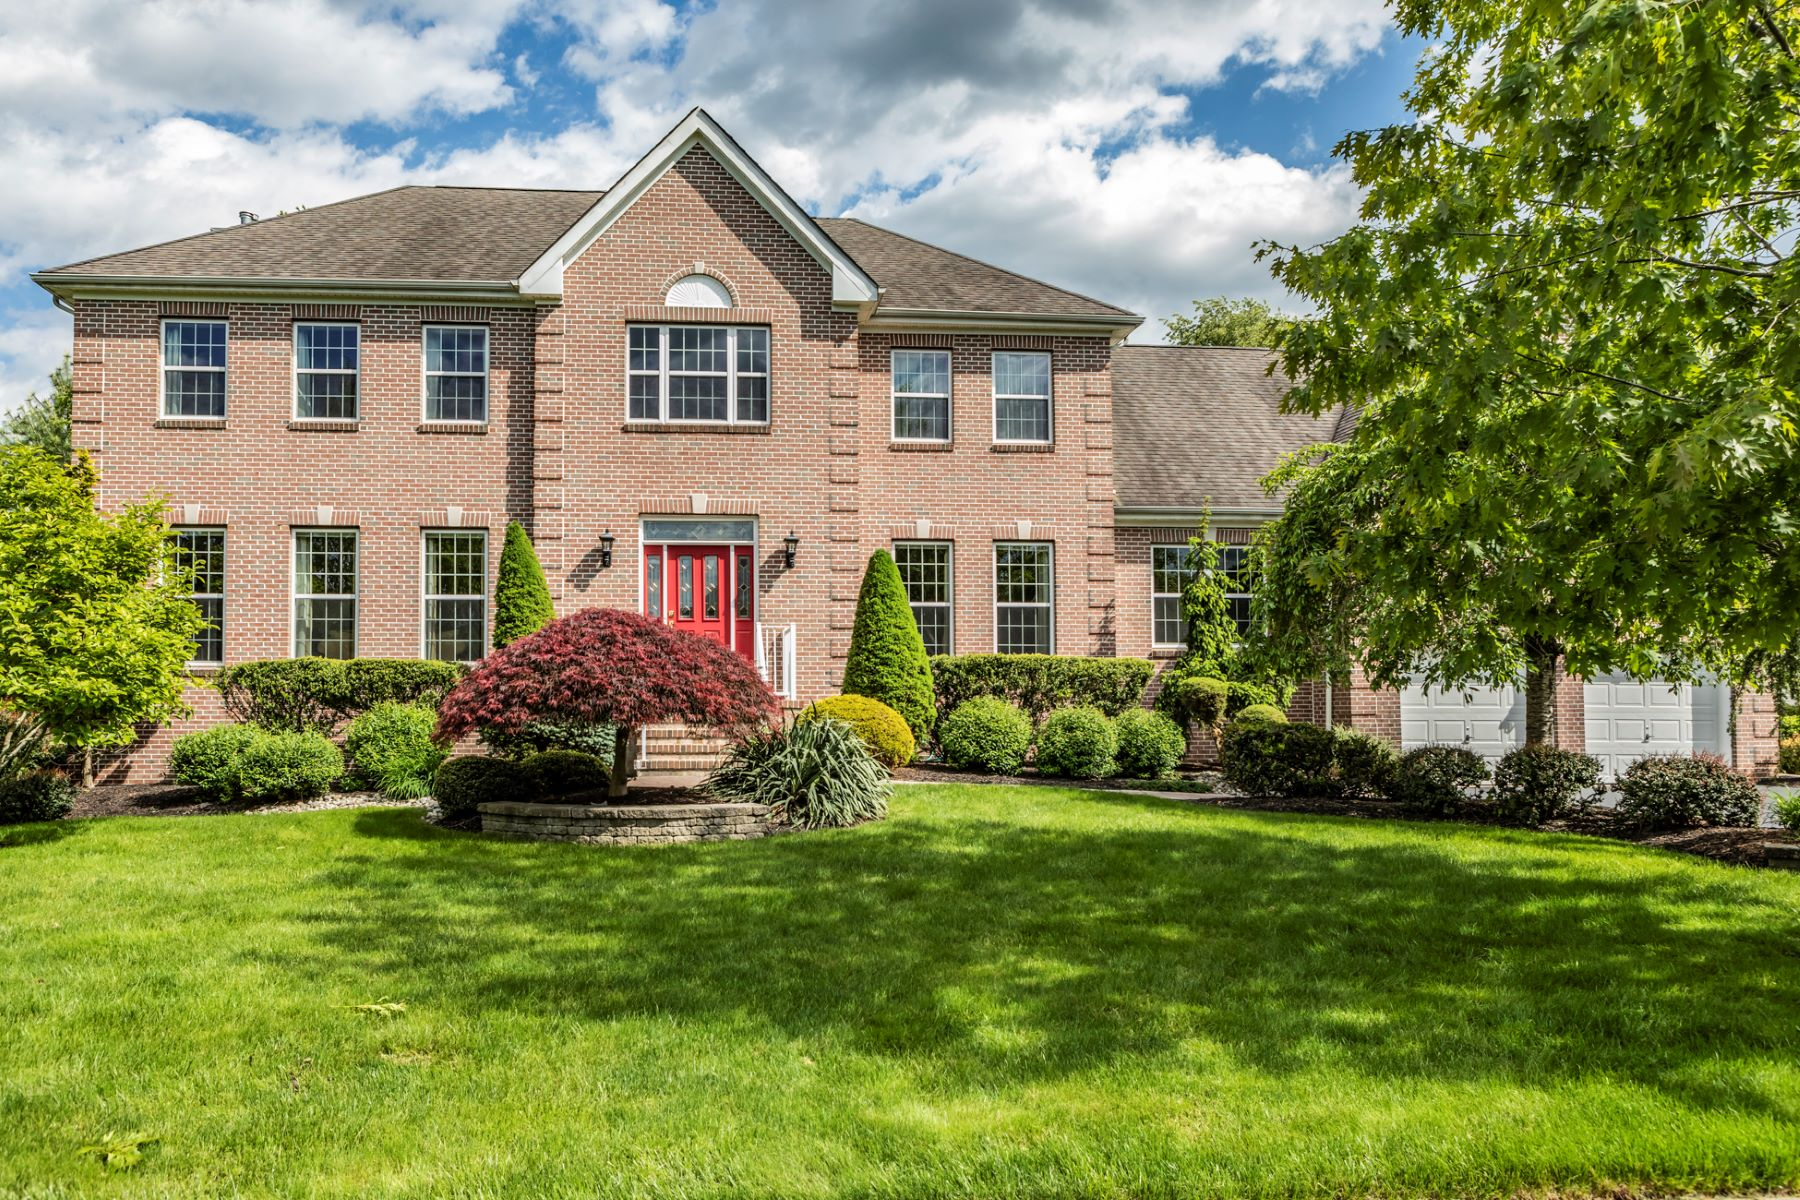 Single Family Homes for Sale at Perfection for Every Kind of Entertaining 5 Mahogany Court, Plainsboro, New Jersey 08536 United States